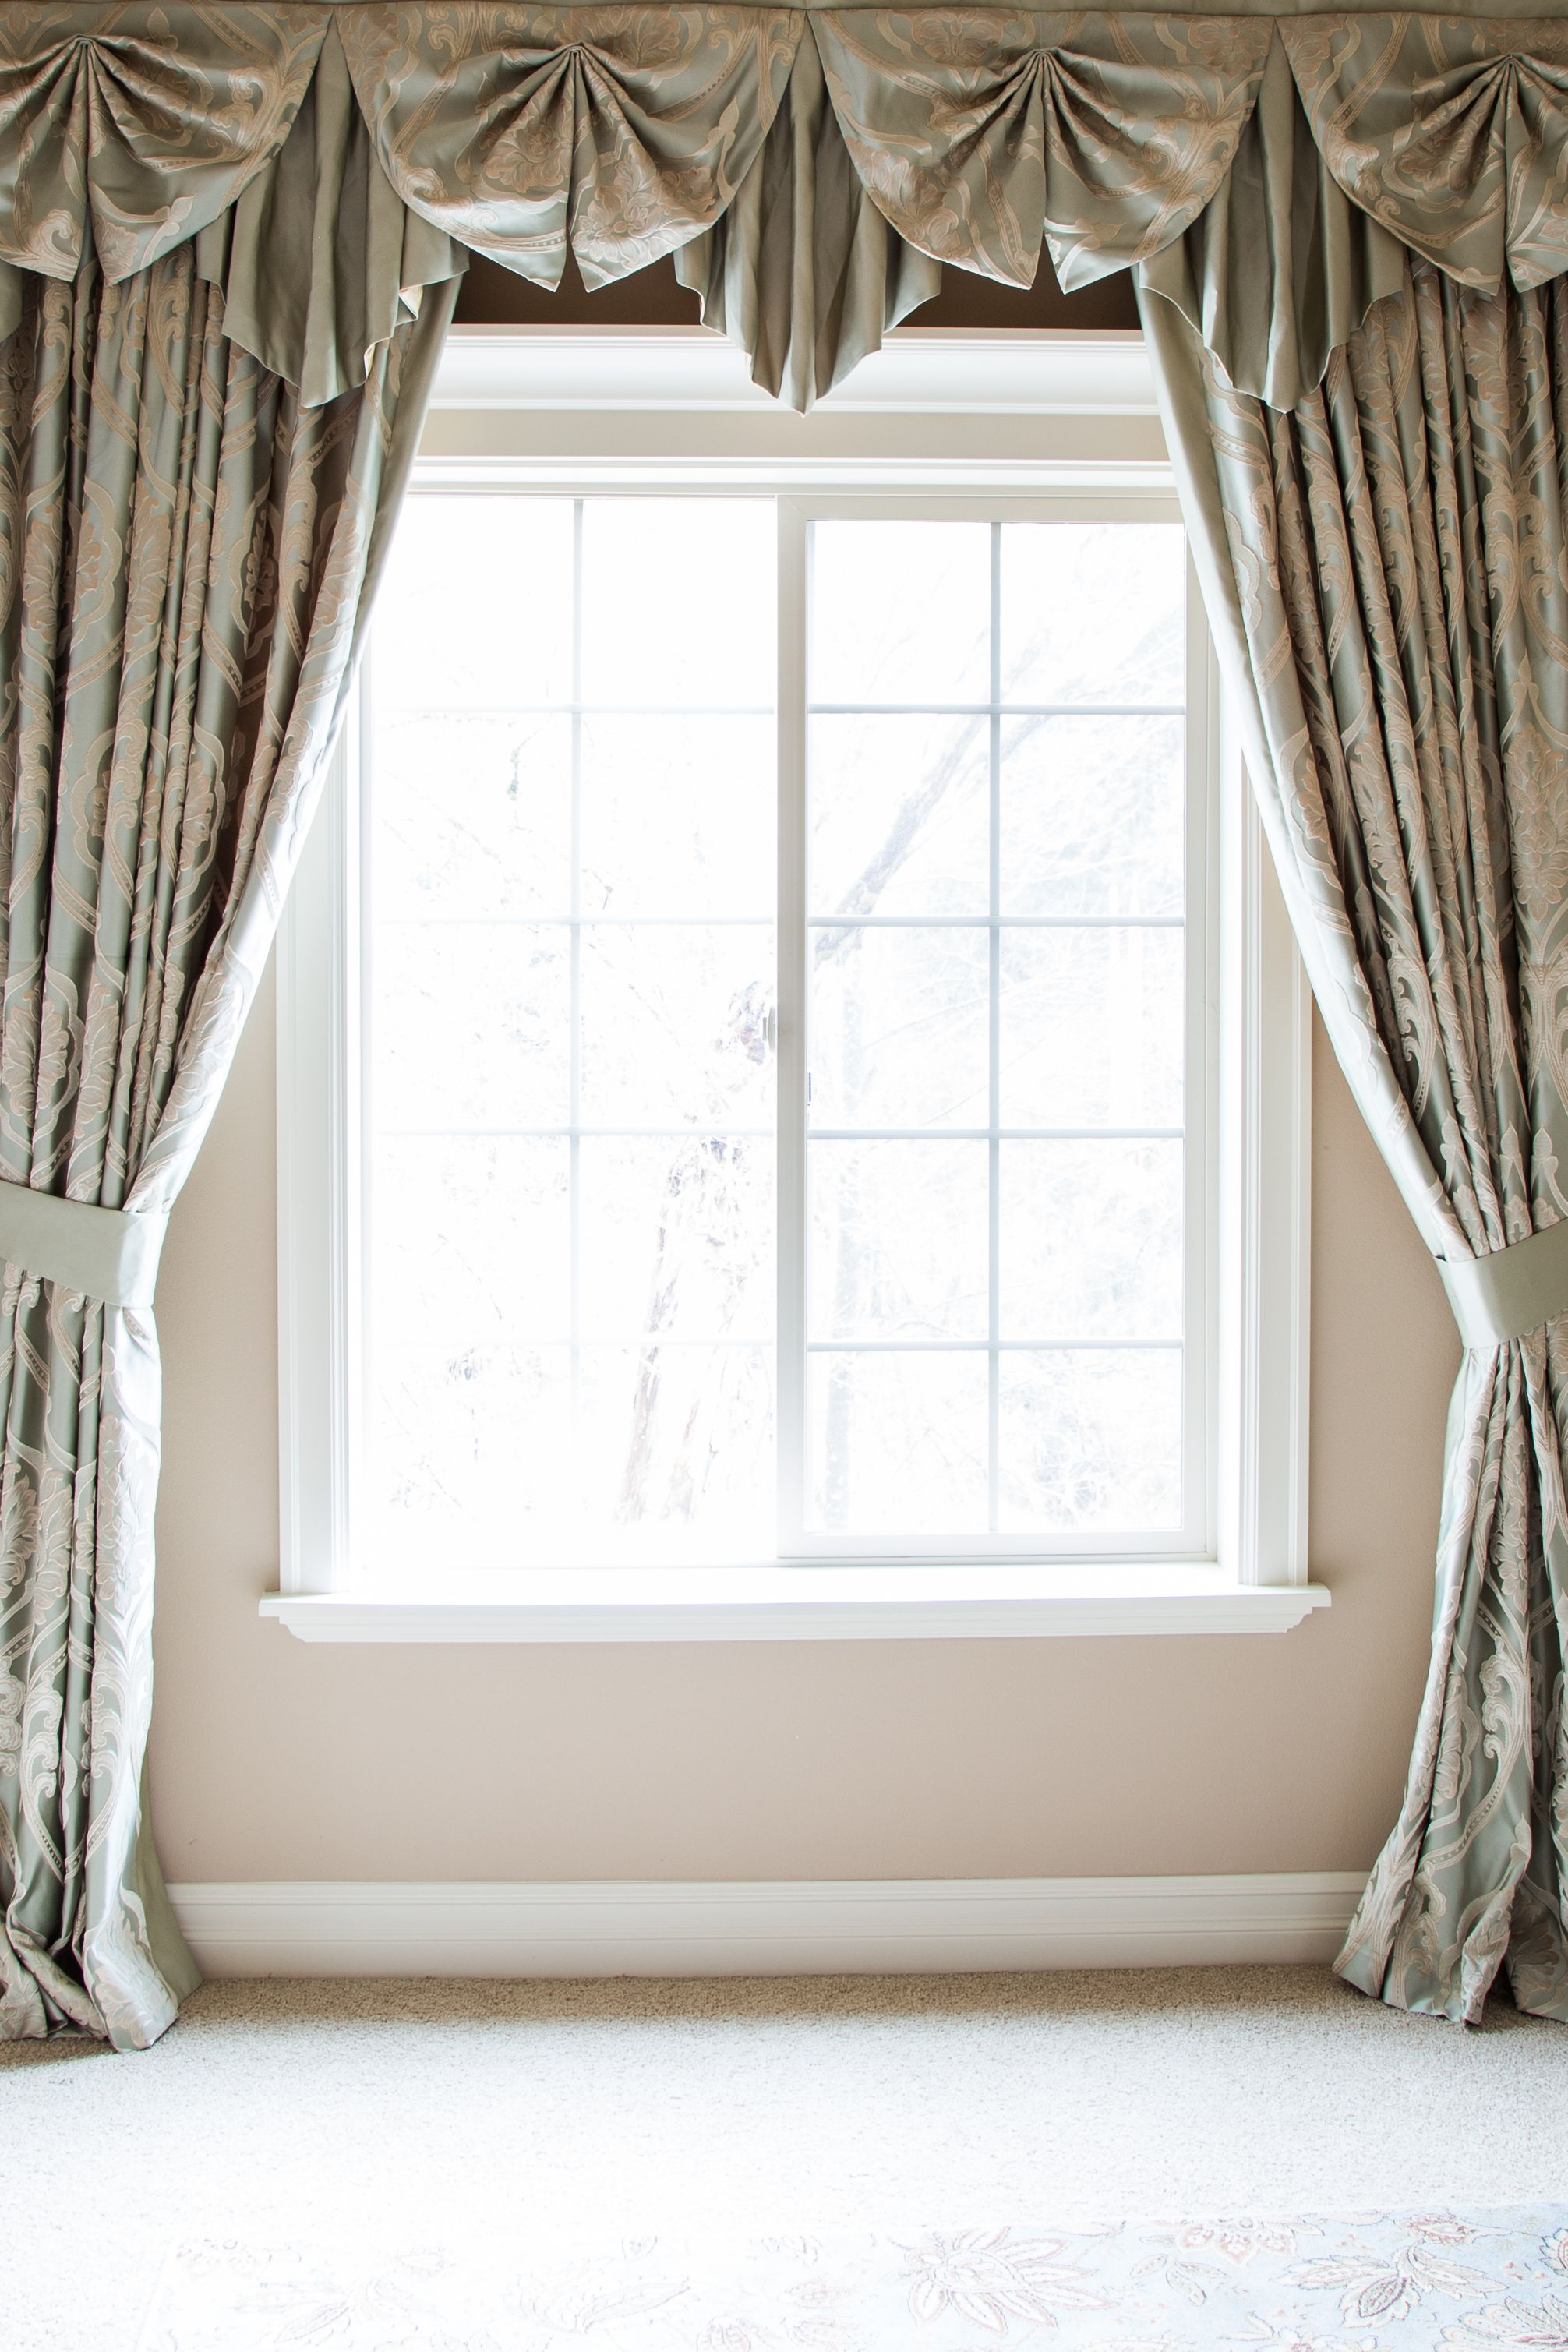 and curtain valance for burlington sale s gorgeous curtains drapes ideas draperies bedroom meaning valances